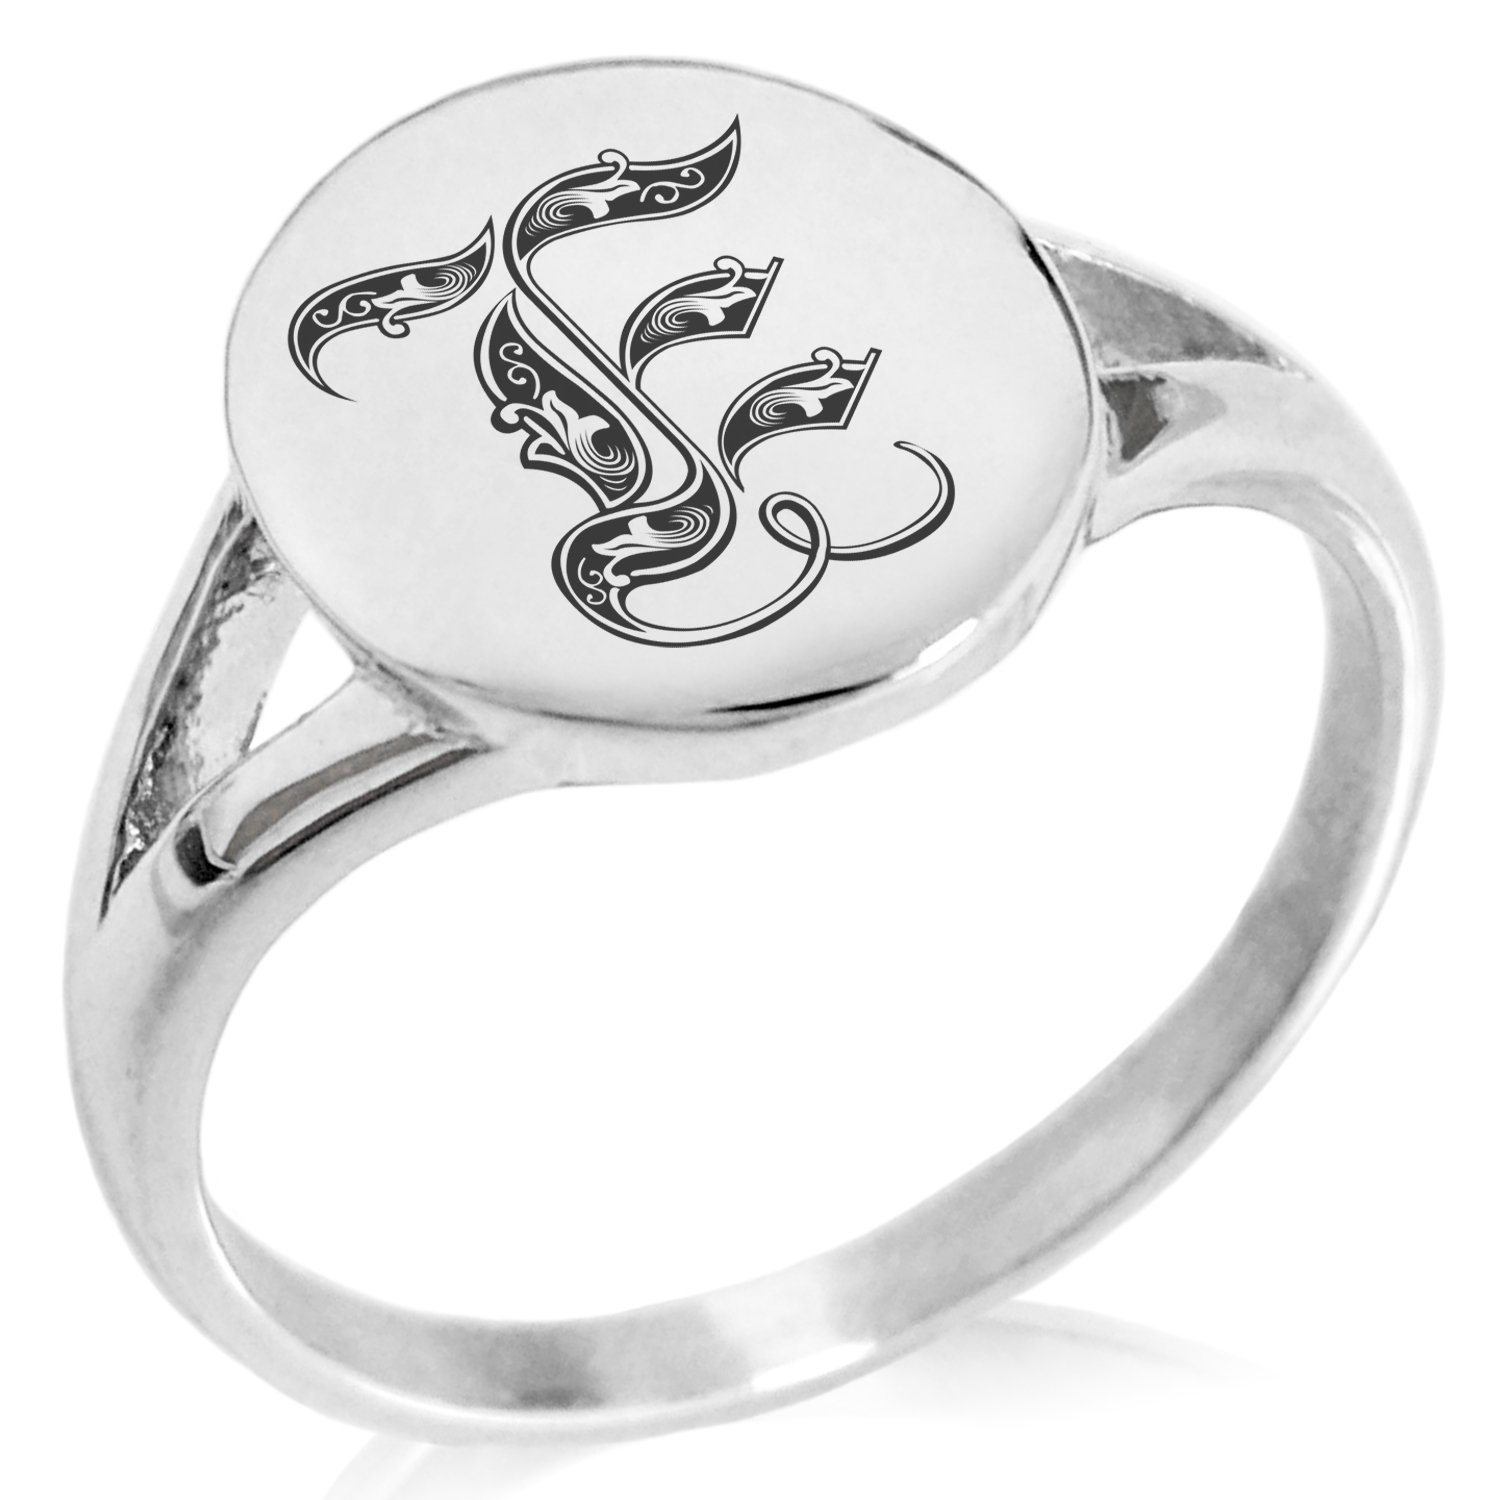 Tioneer Stainless Steel Letter E Alphabet Initial Royal Monogram Minimalist Oval Top Polished Statement Ring, Size 8